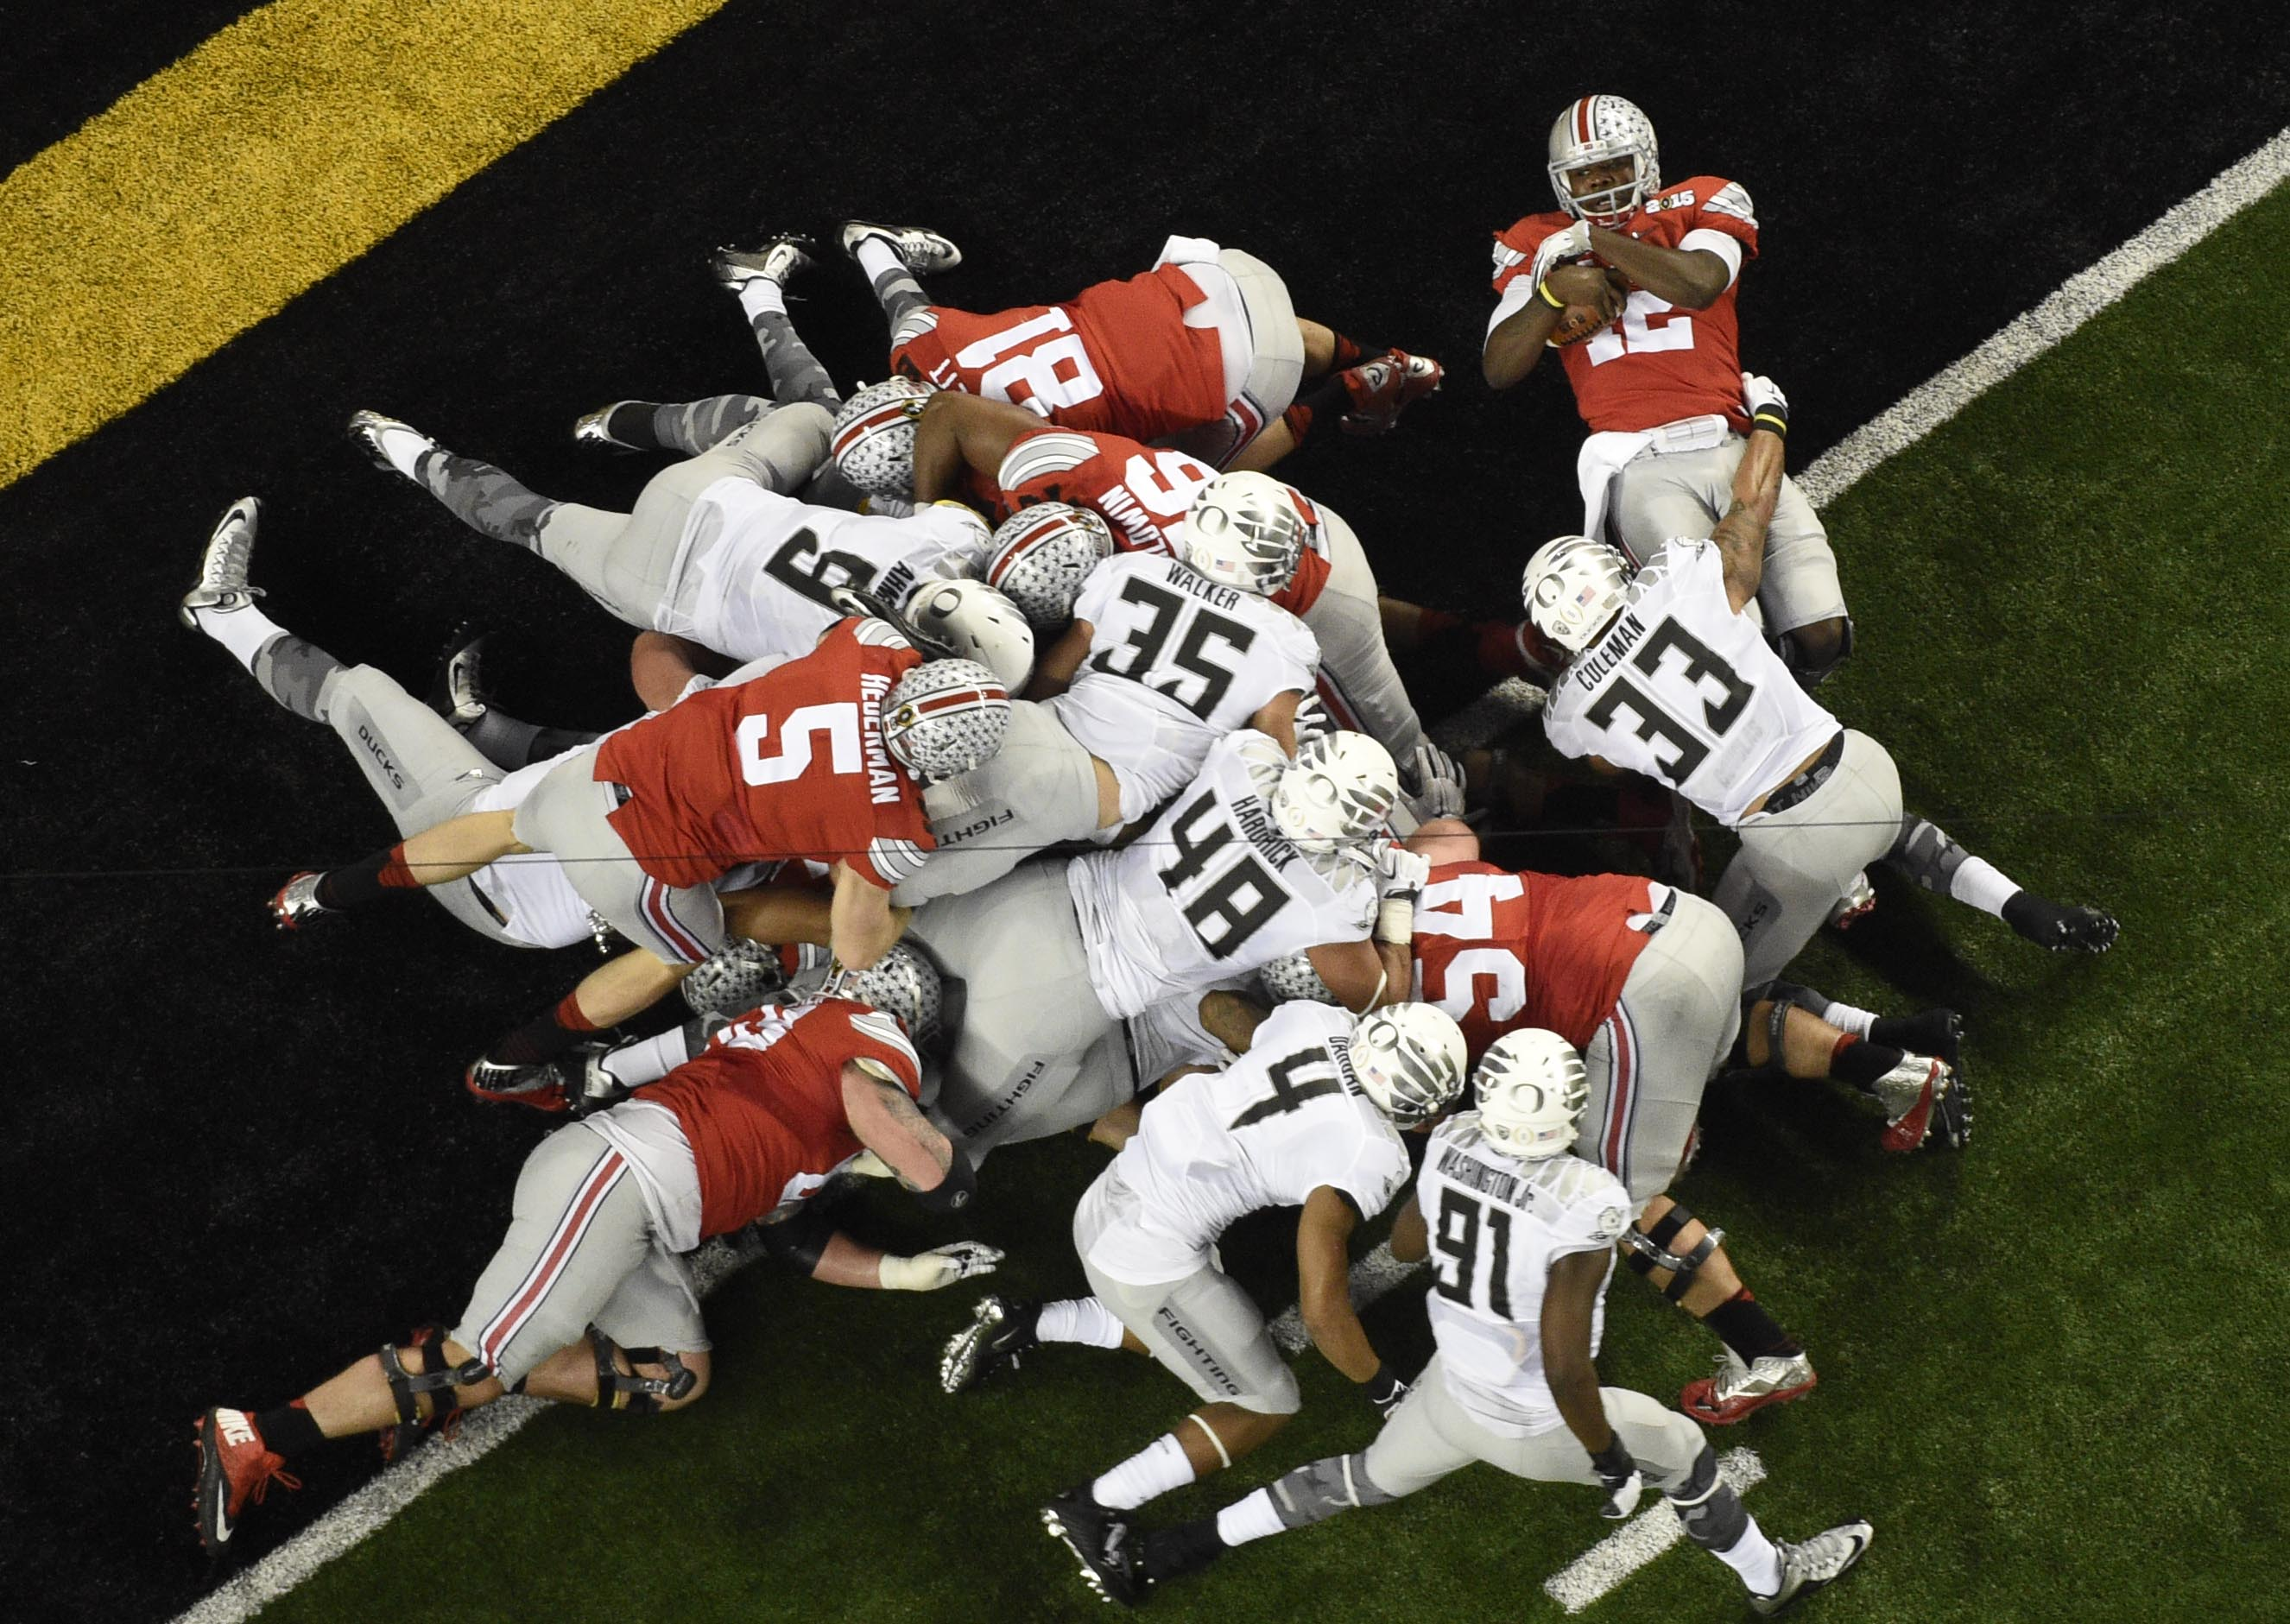 OSU Powering their way into the end zone